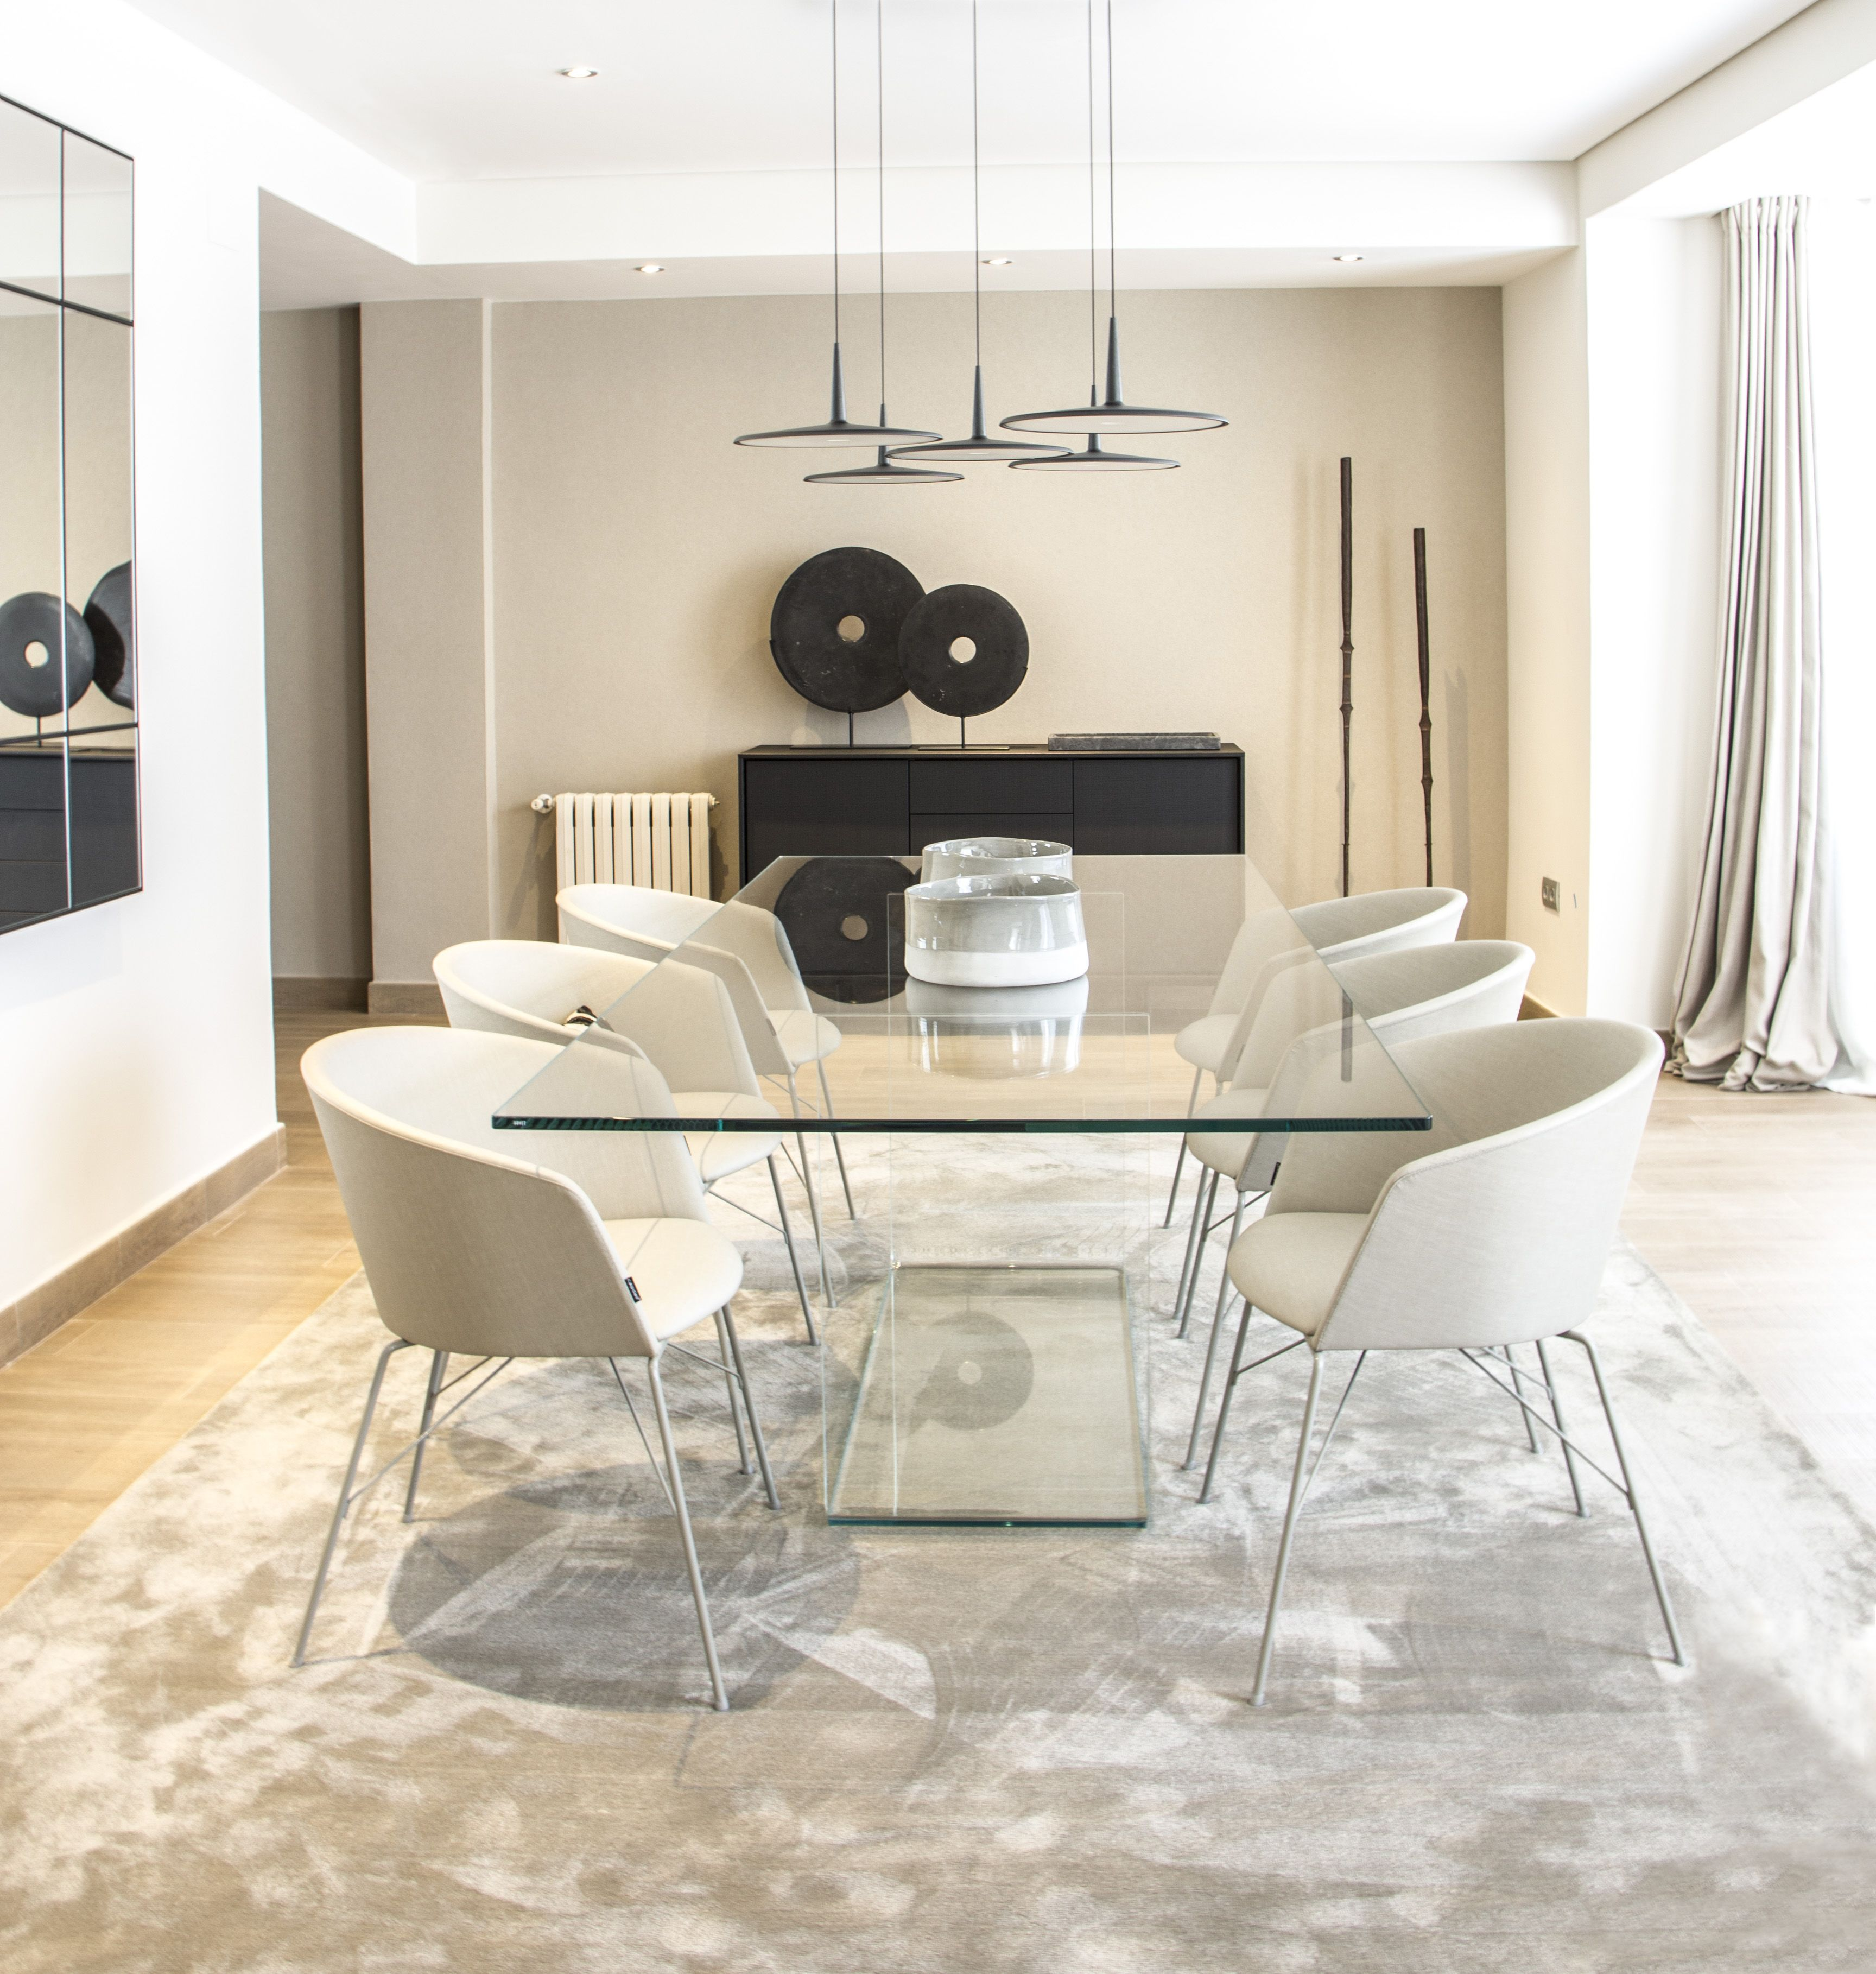 Valencia Dining Table In A Residential Project Thanks To Its